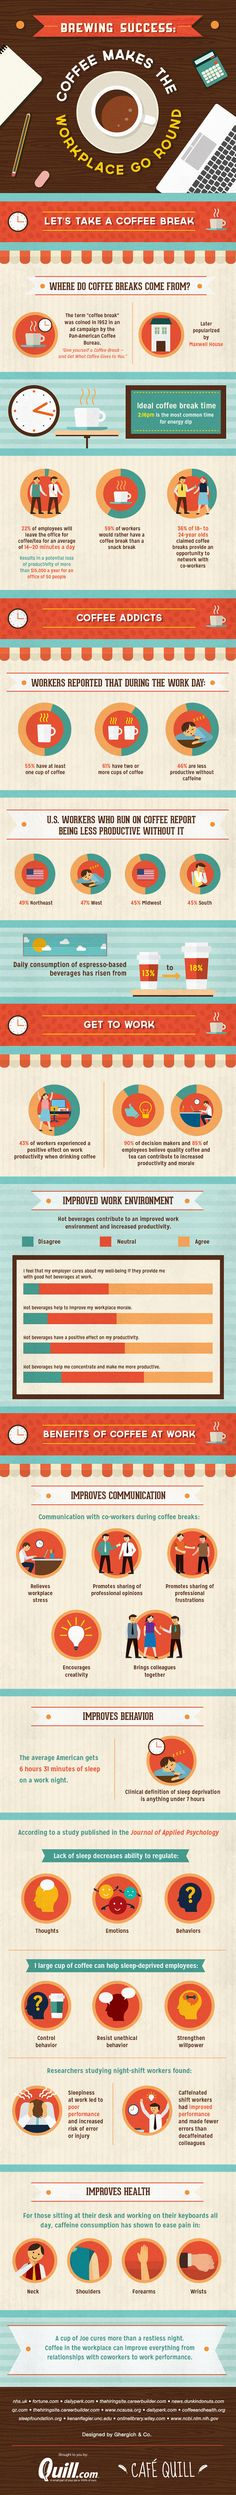 This Is How #Coffee Changes The Workplace